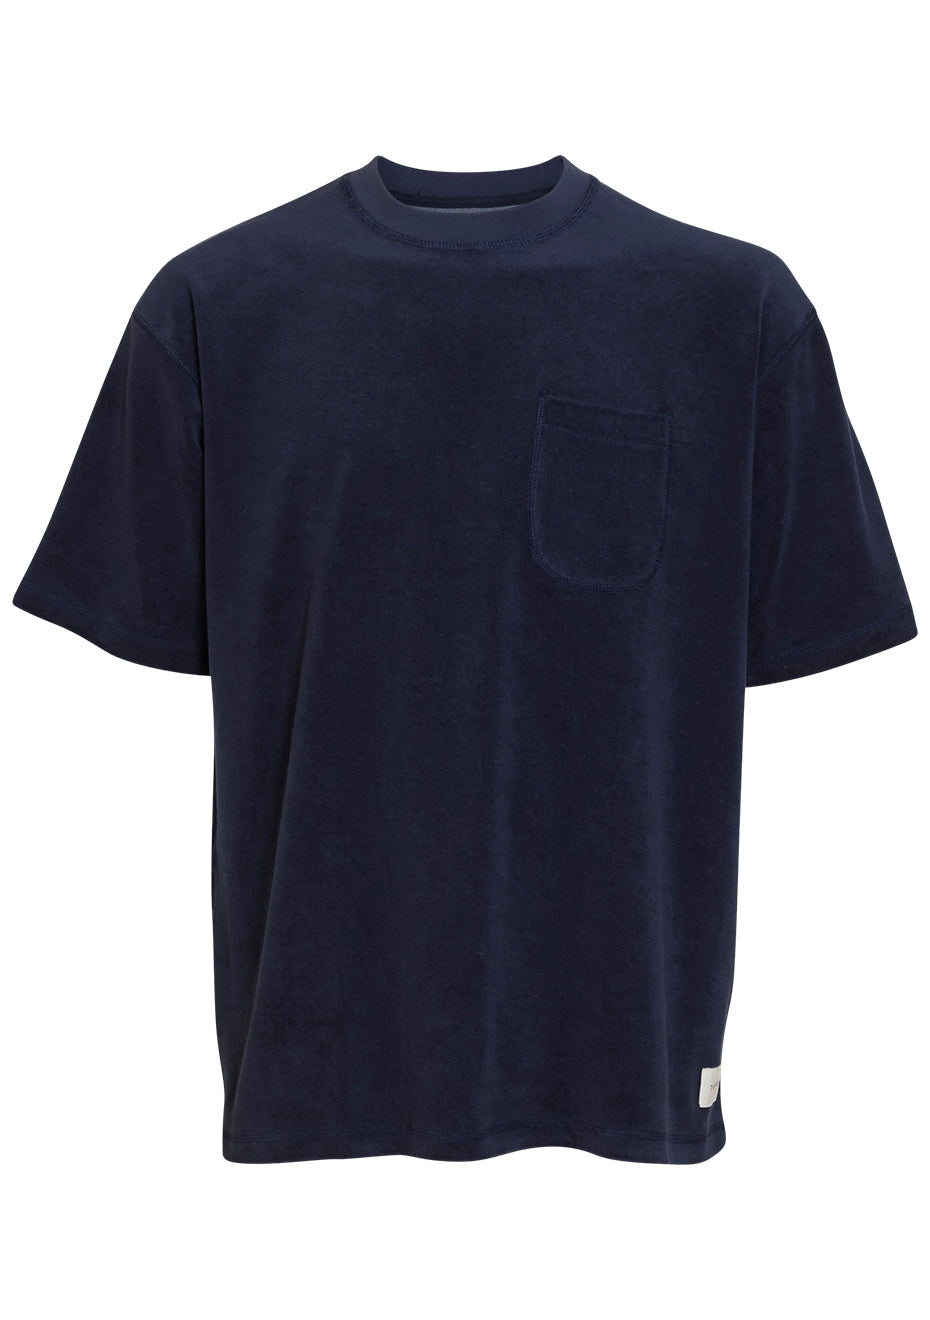 Dark Navy Terry Boxy T-shirt